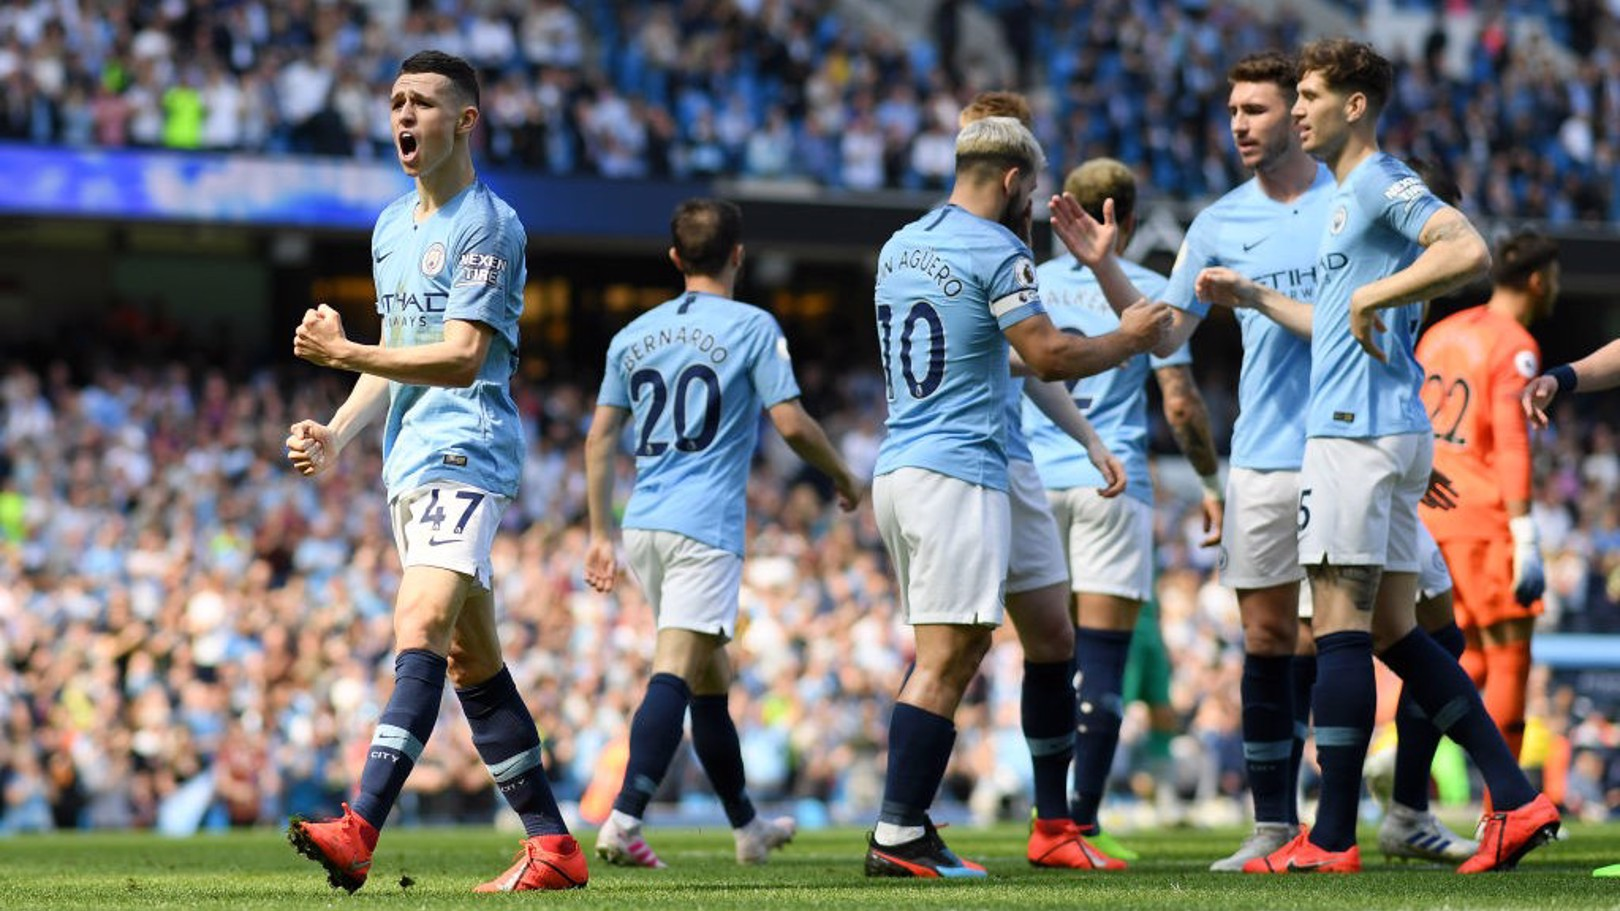 RESTART: City's 2019/20 Premier League campaign begins at West Ham United.